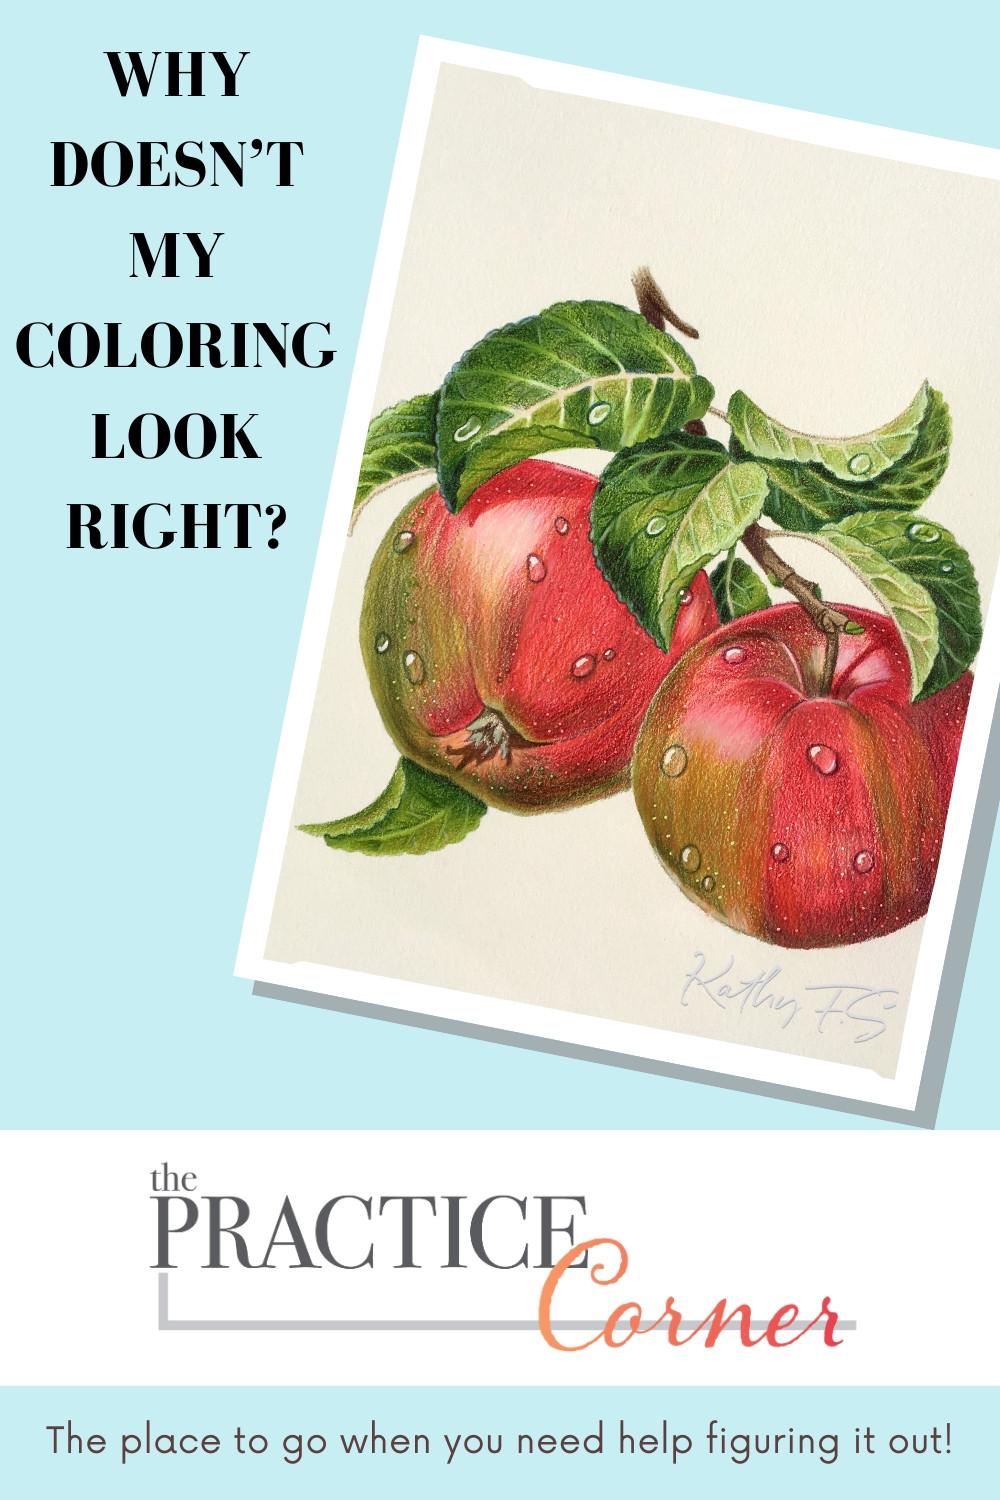 Focused technique practice with improve your coloring | #thepracticecorner #coloringtips